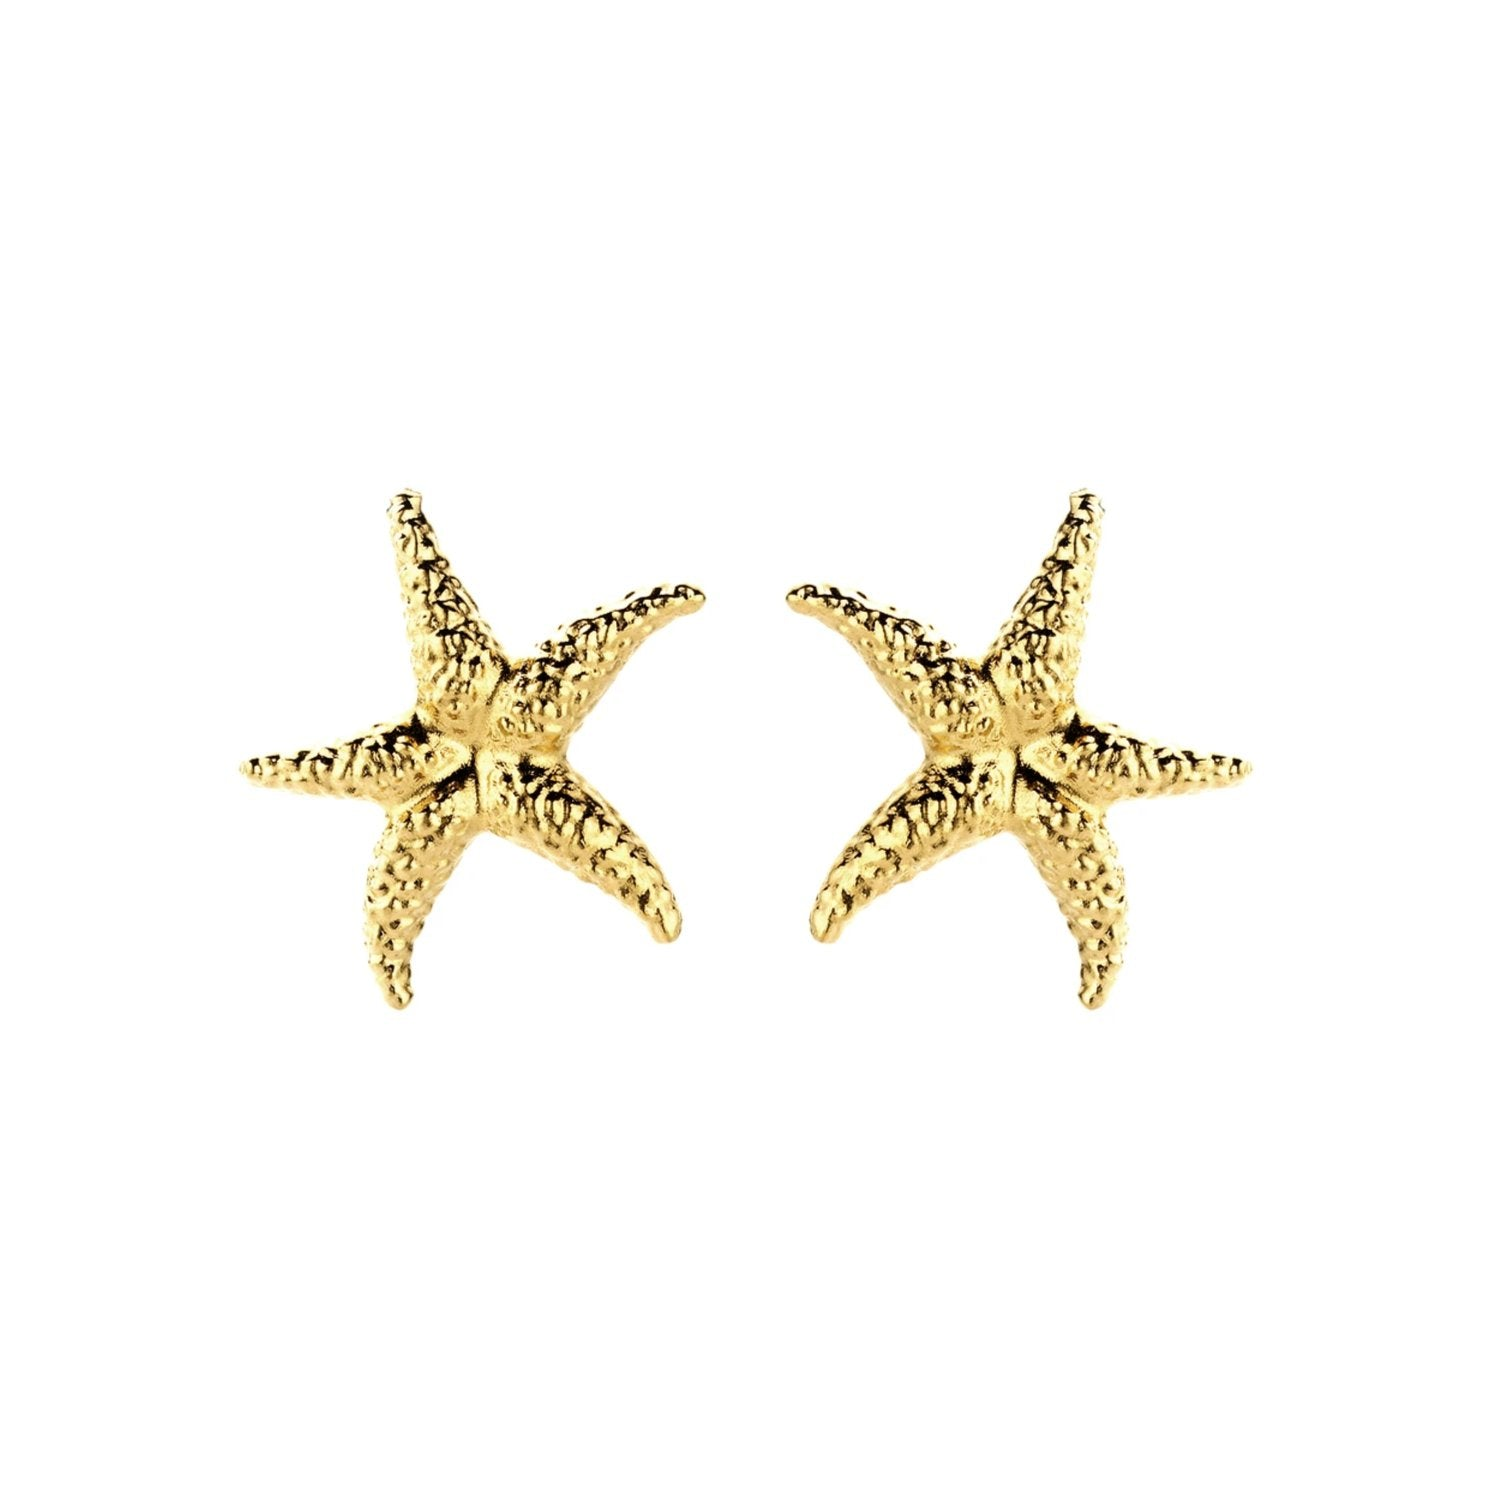 Seastar gold earrings - Souvenirs de Pomme